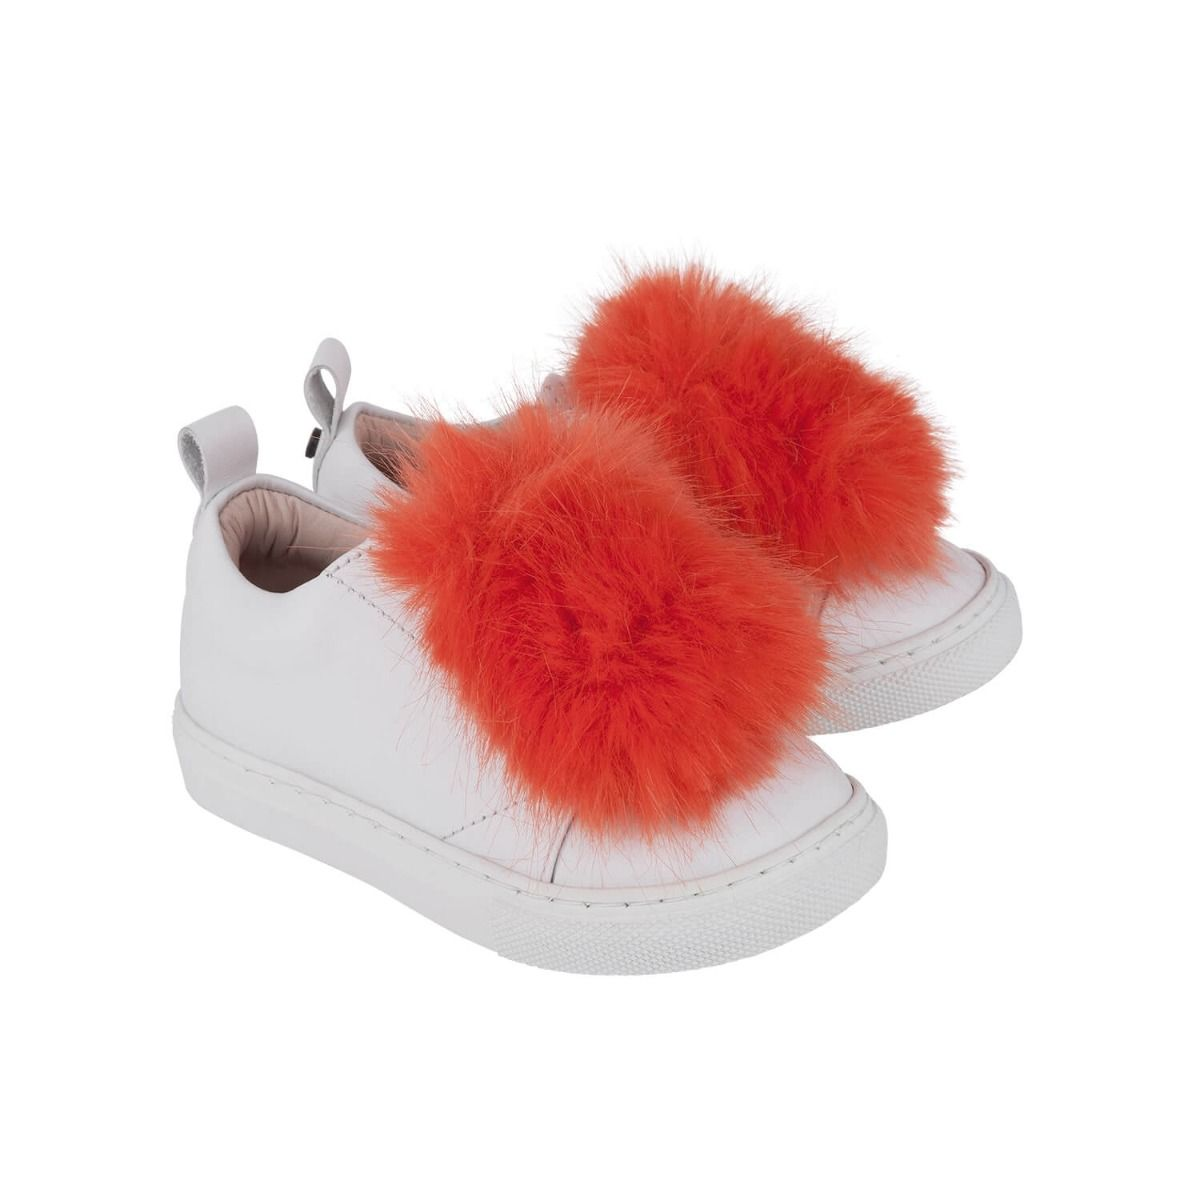 Baby and girl's sneakers in white leather with bright orange fur applique